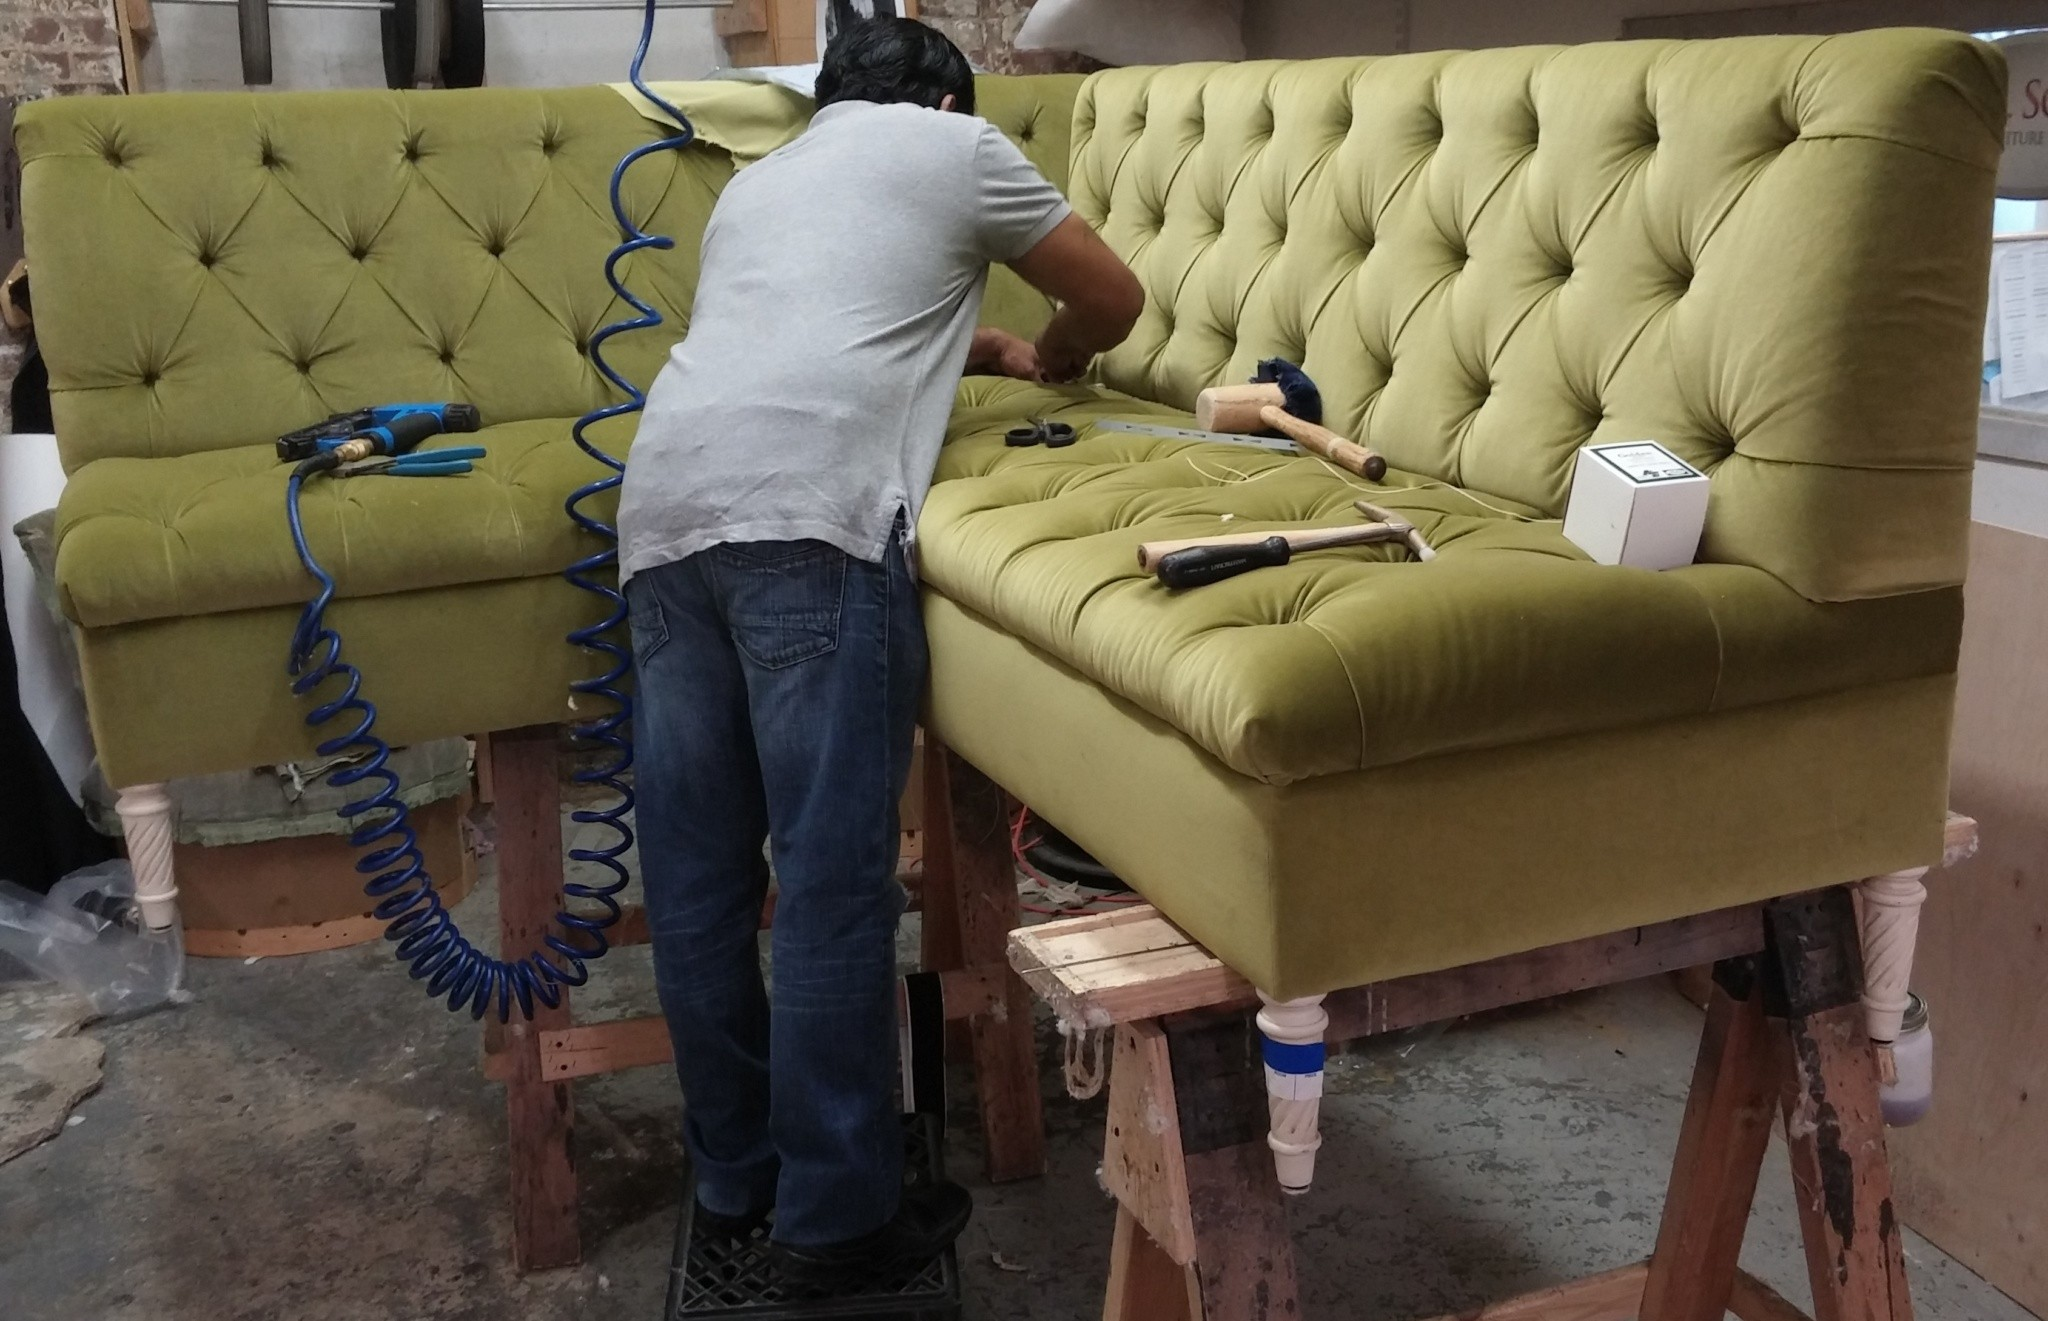 Upholstery dust mites removal services in Kurmond